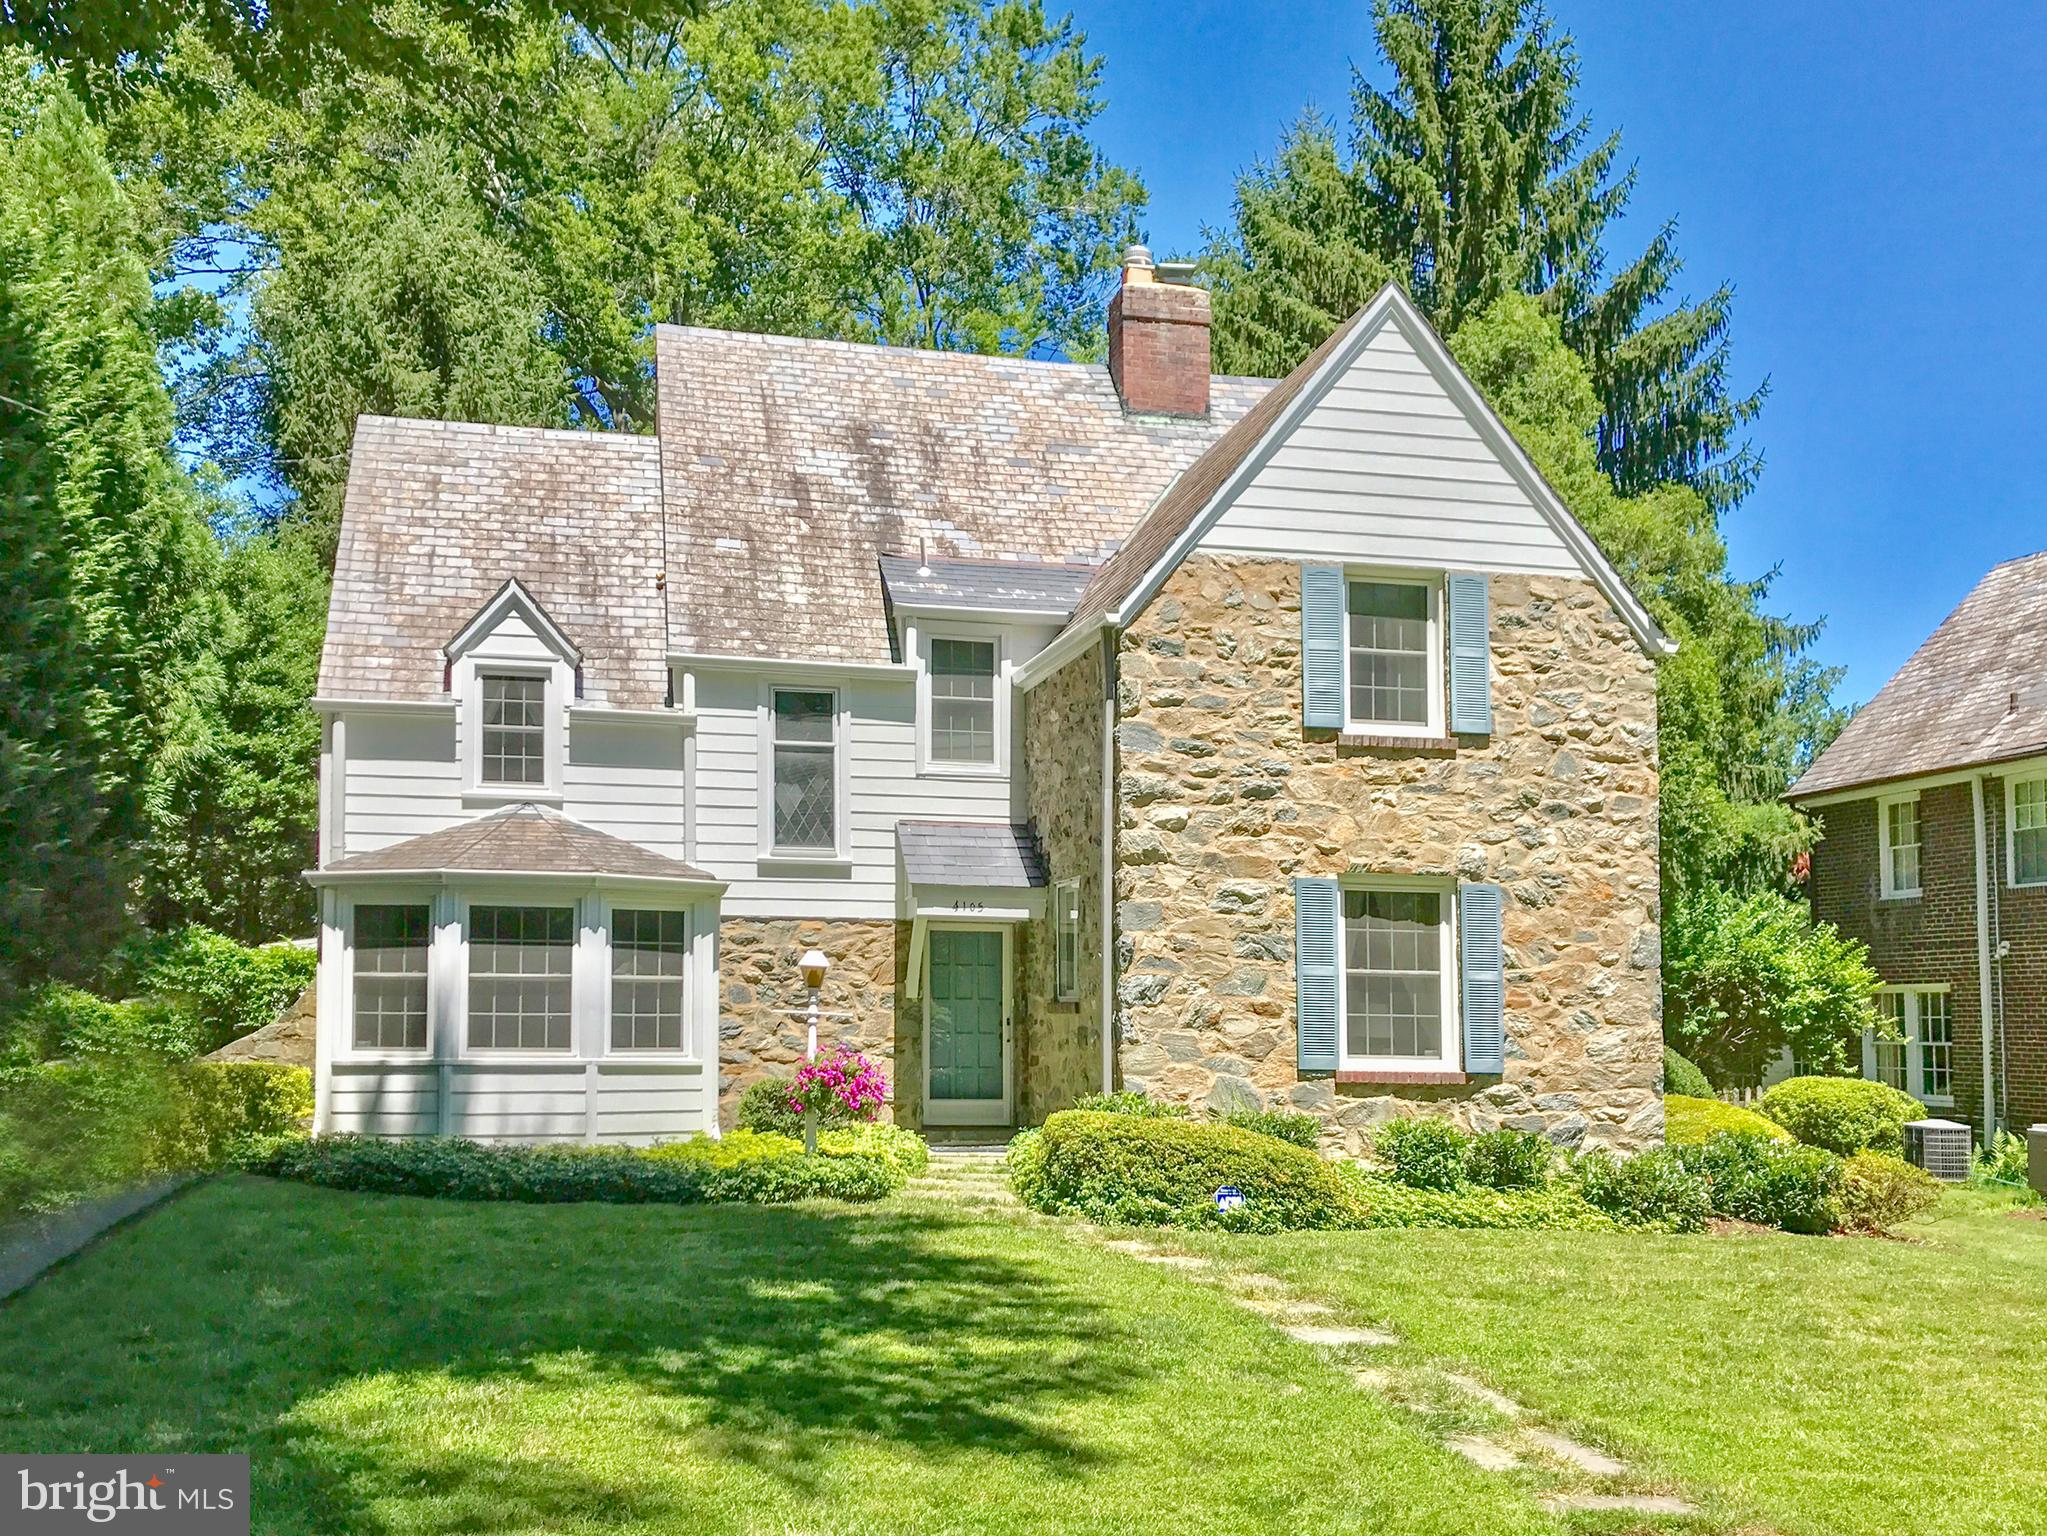 4105 SYCAMORE STREET, CHEVY CHASE, MD 20815